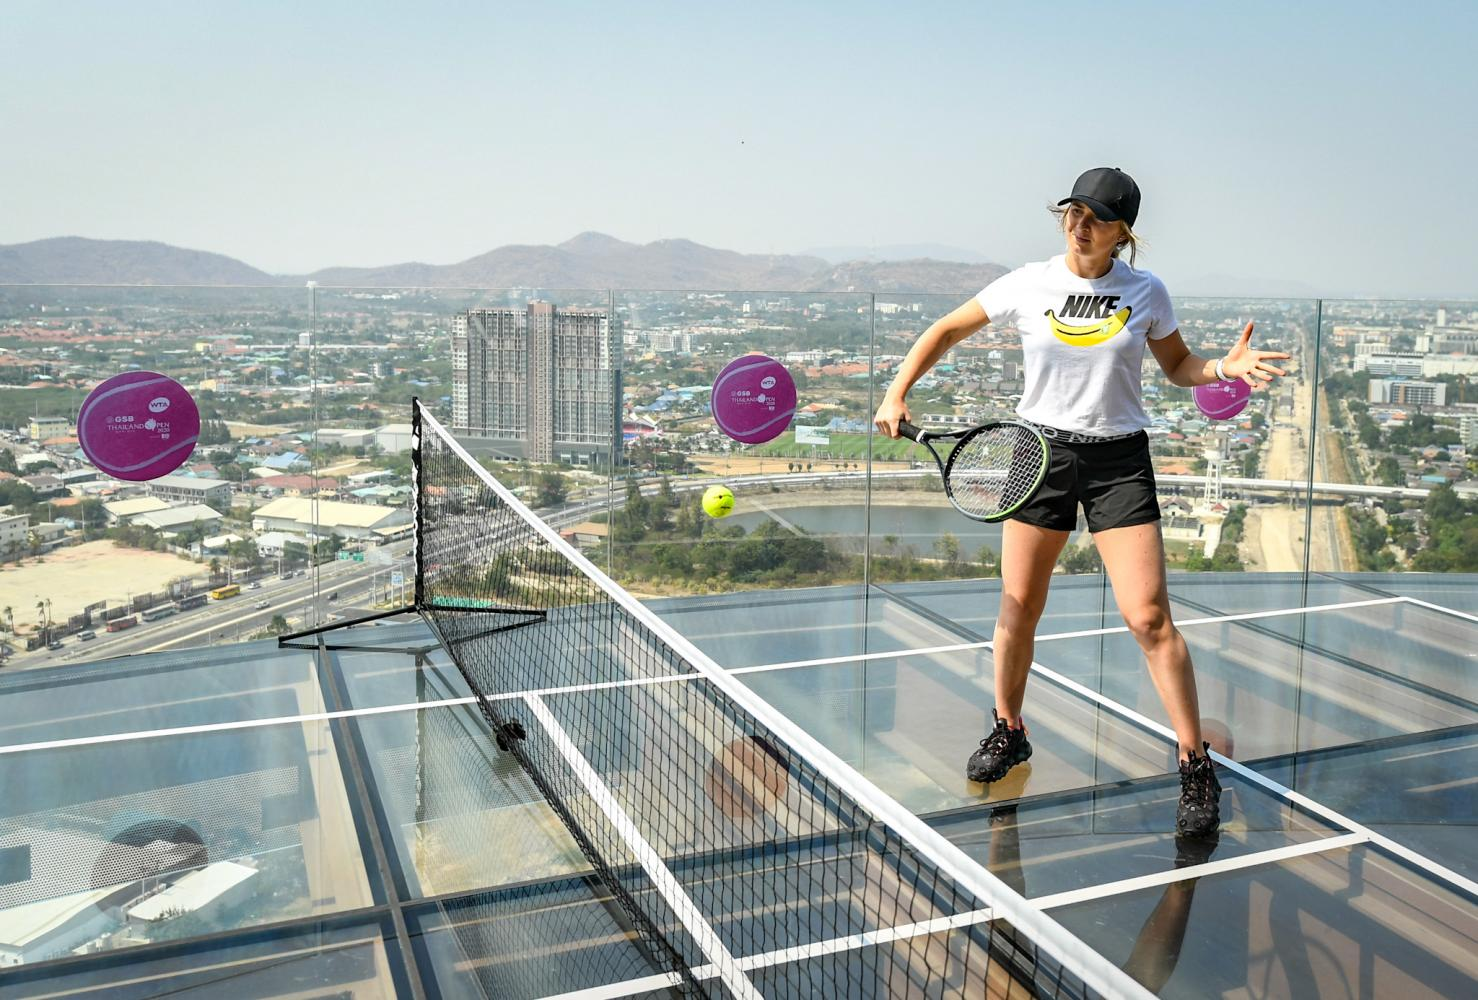 Ukraine's Elina Svitolina plays on the rooftop of the Holiday Inn Resort Vana Nava Hua Hin in a promotional event on Monday.